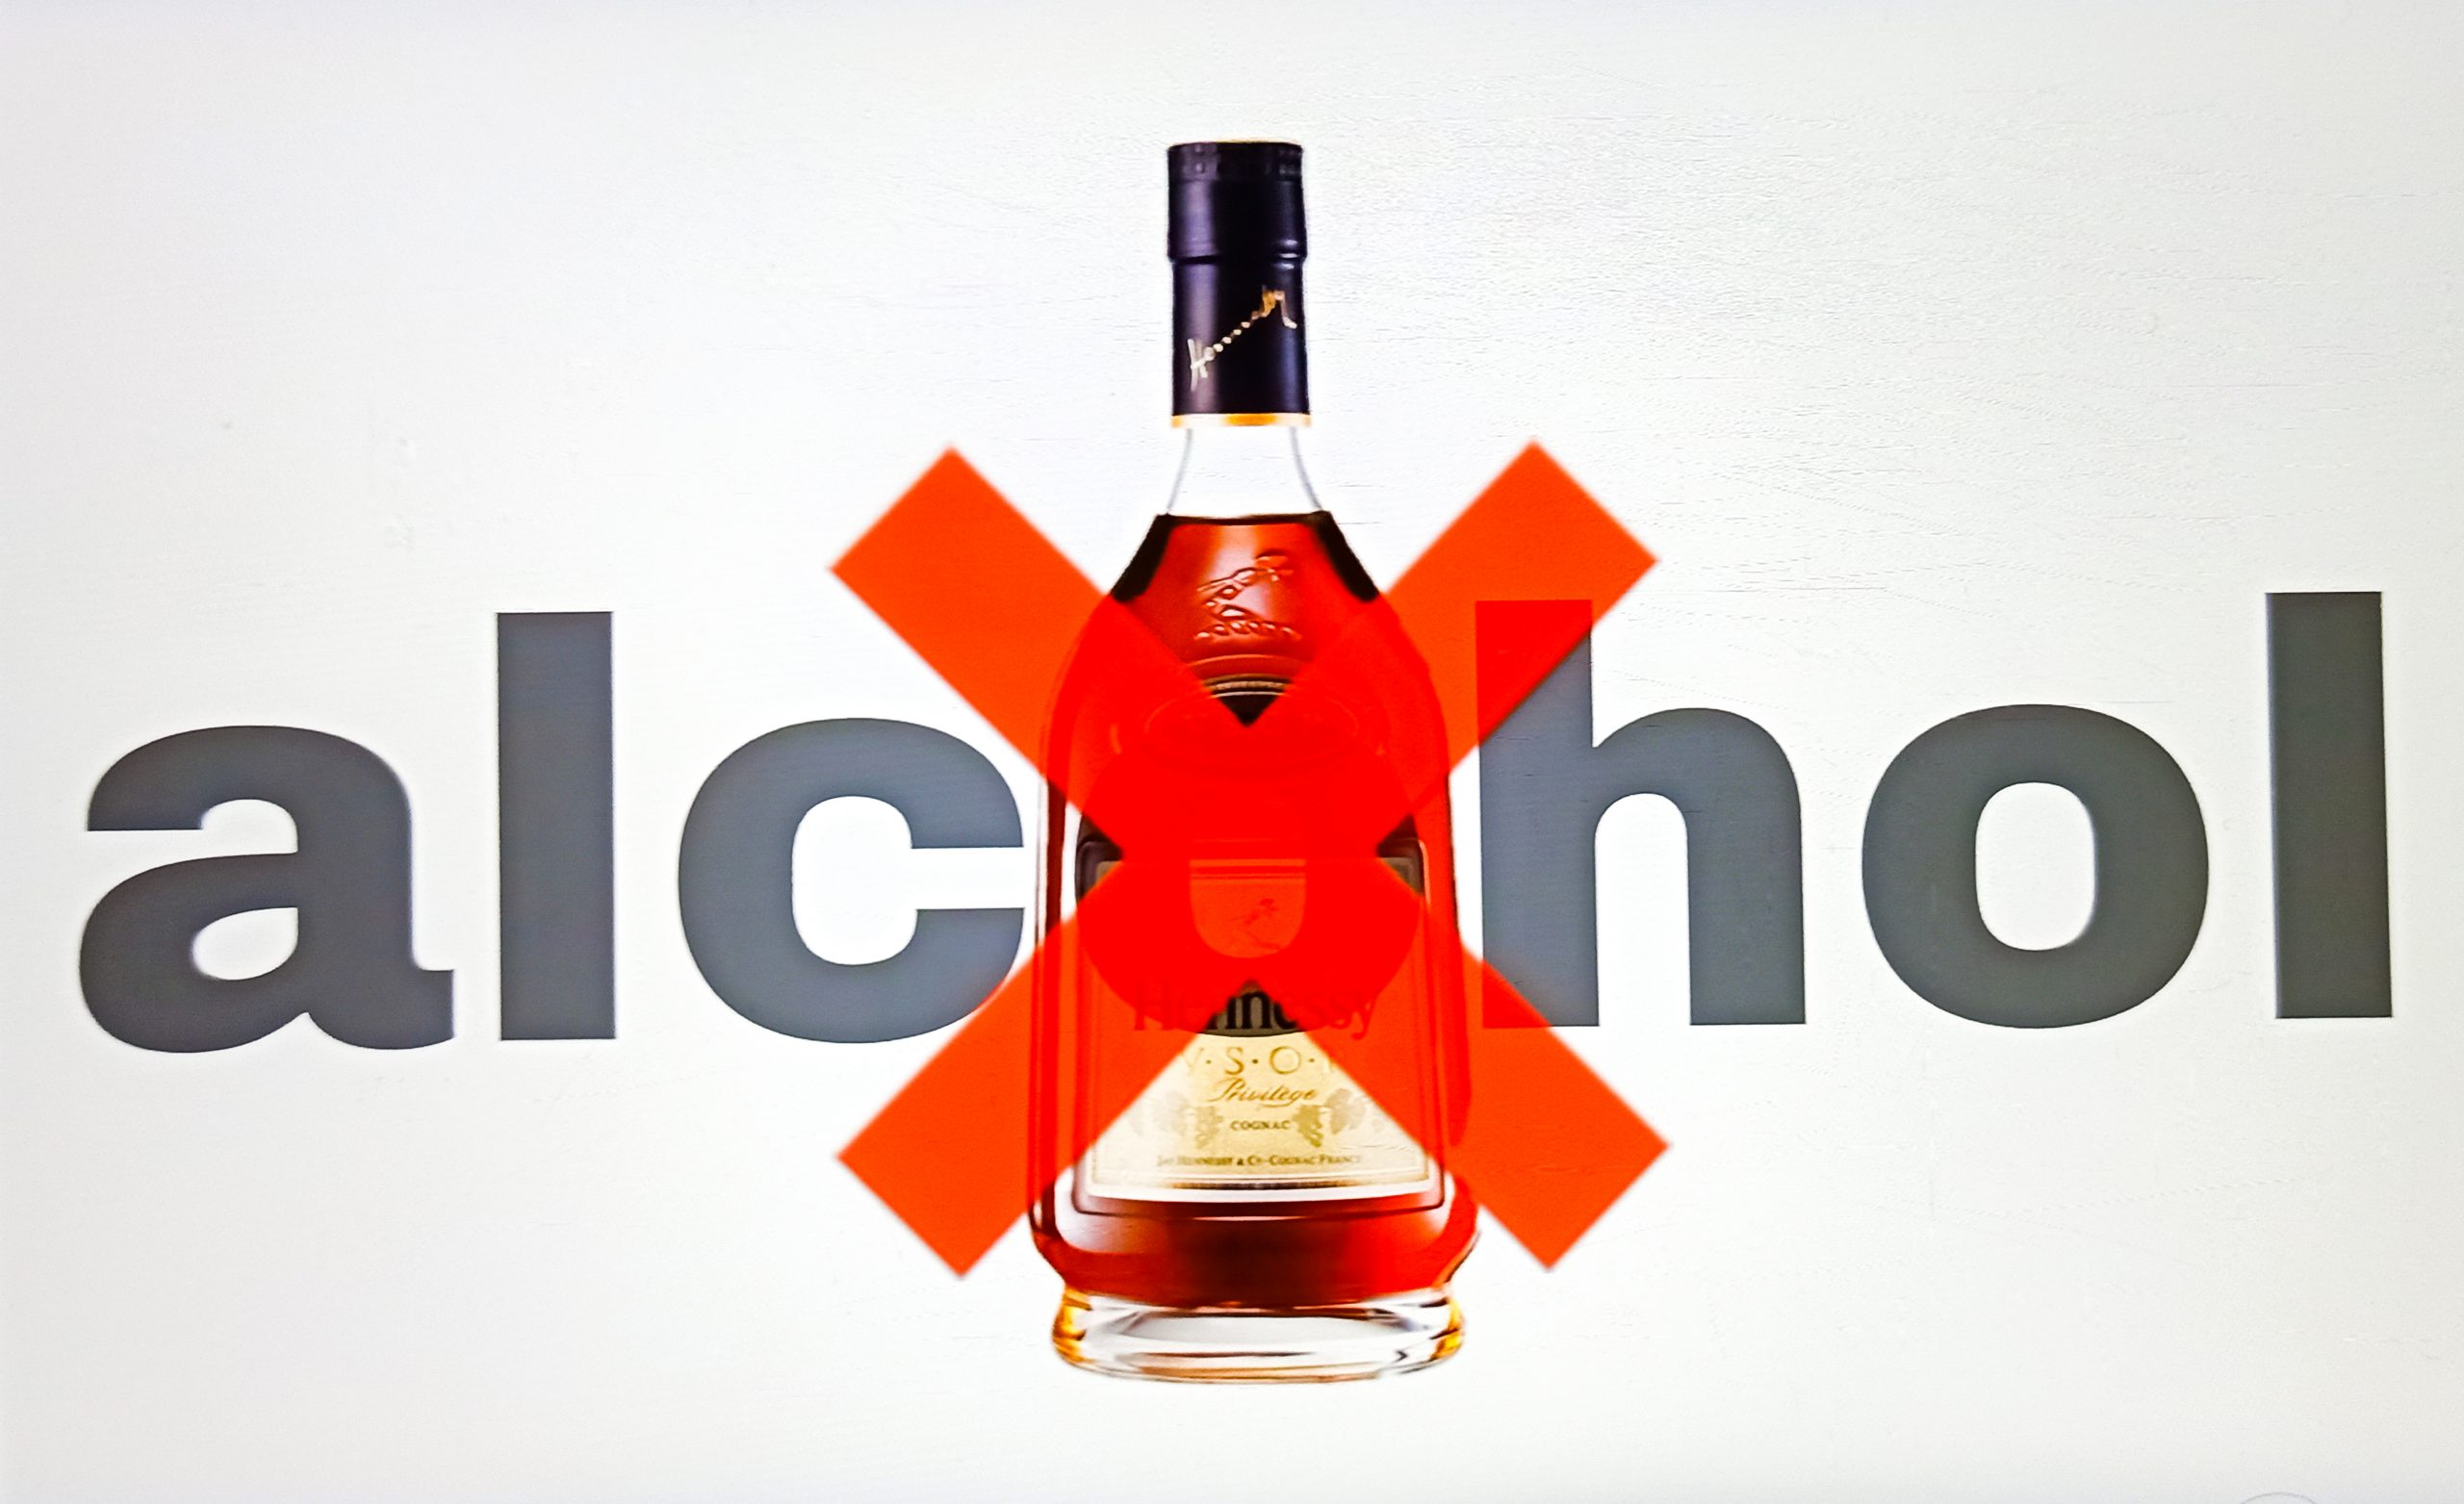 No Alcohol Illustration